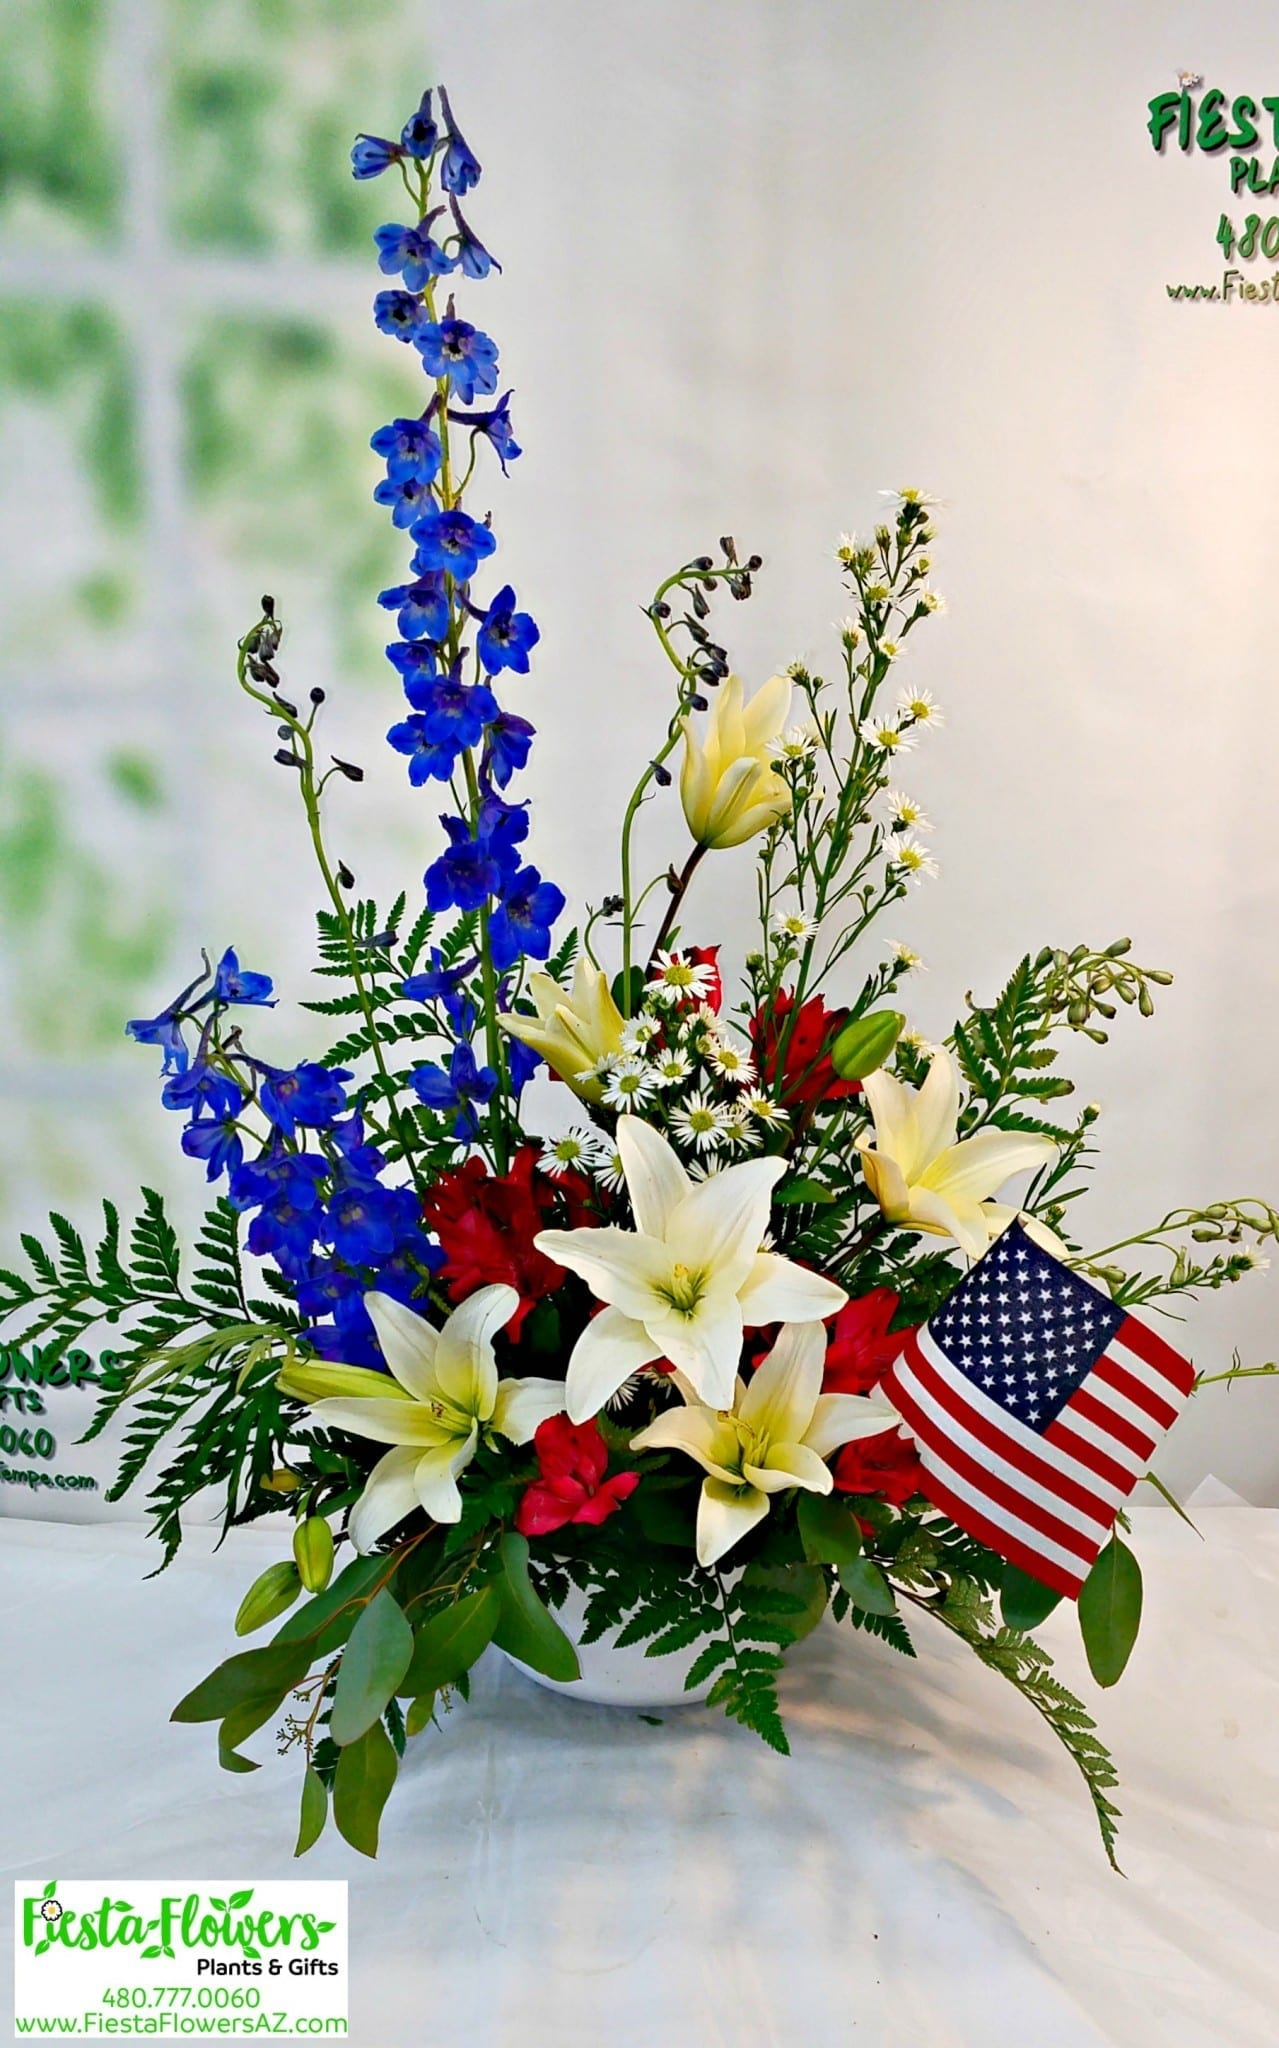 Memorial tribute in red white and blue fiesta flowers plants gifts memorial tribute in red white and blue if 841 izmirmasajfo Gallery